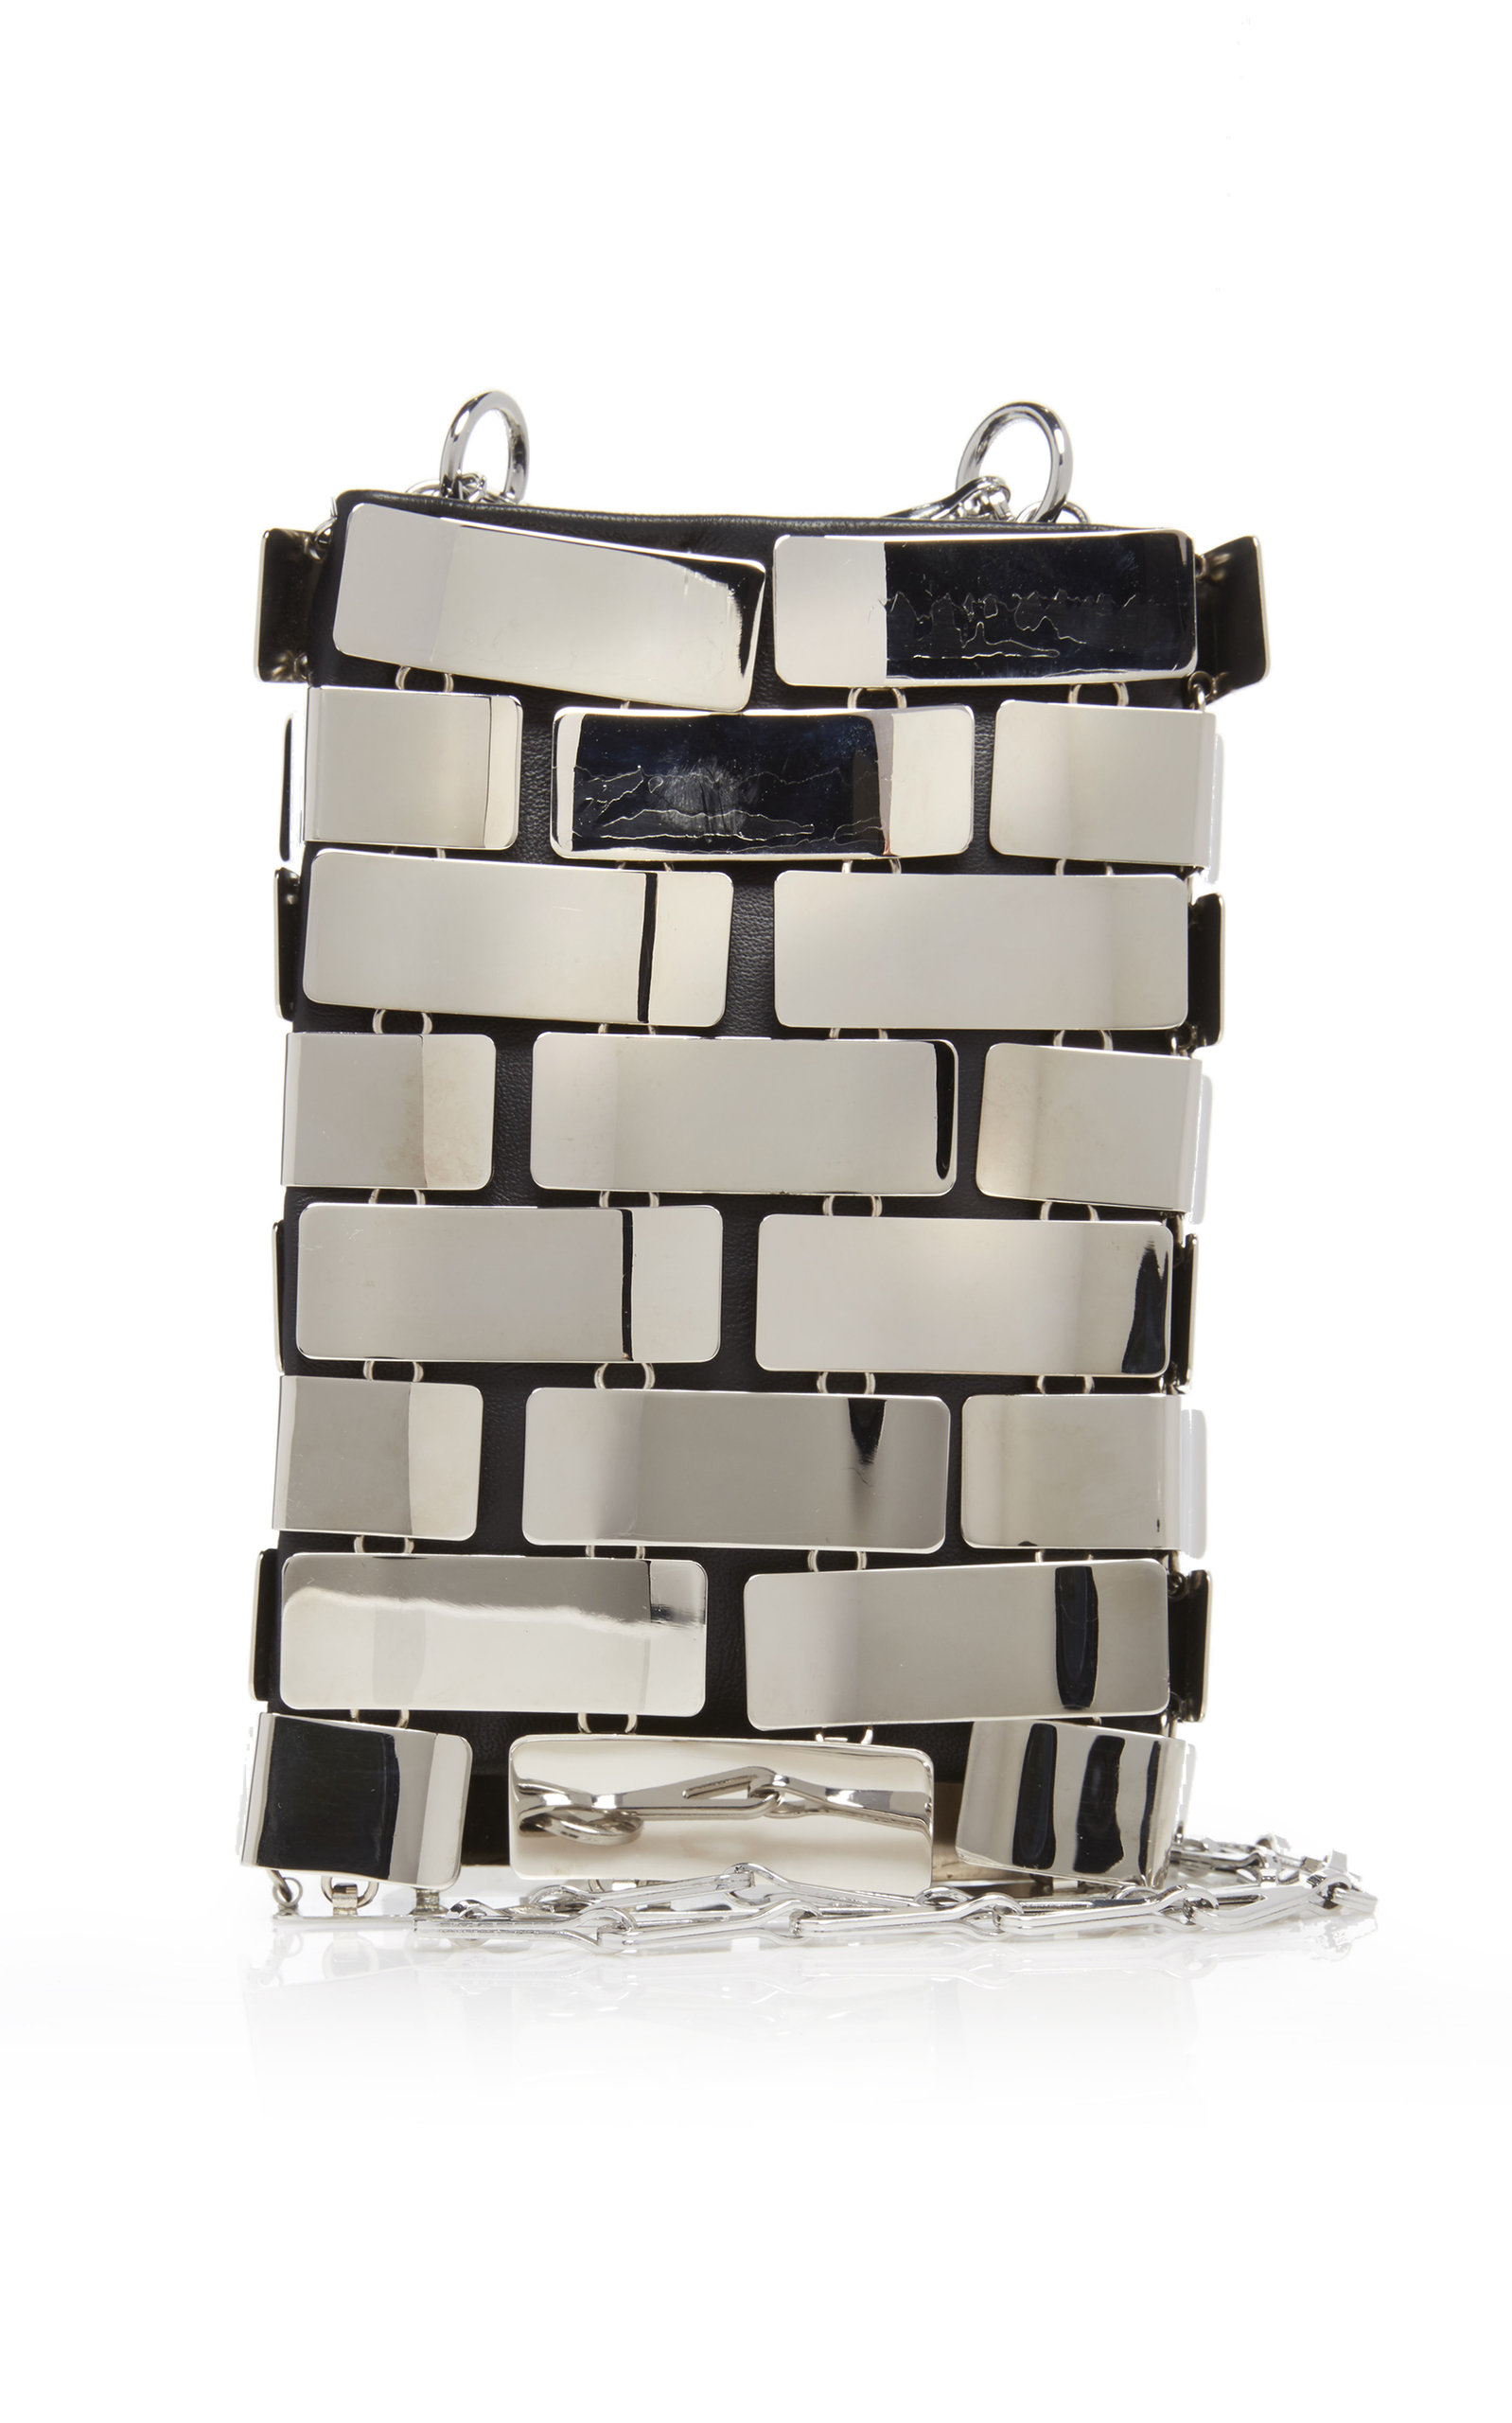 Chrome Mini 1969 Brass Bag by Paco Rabanne